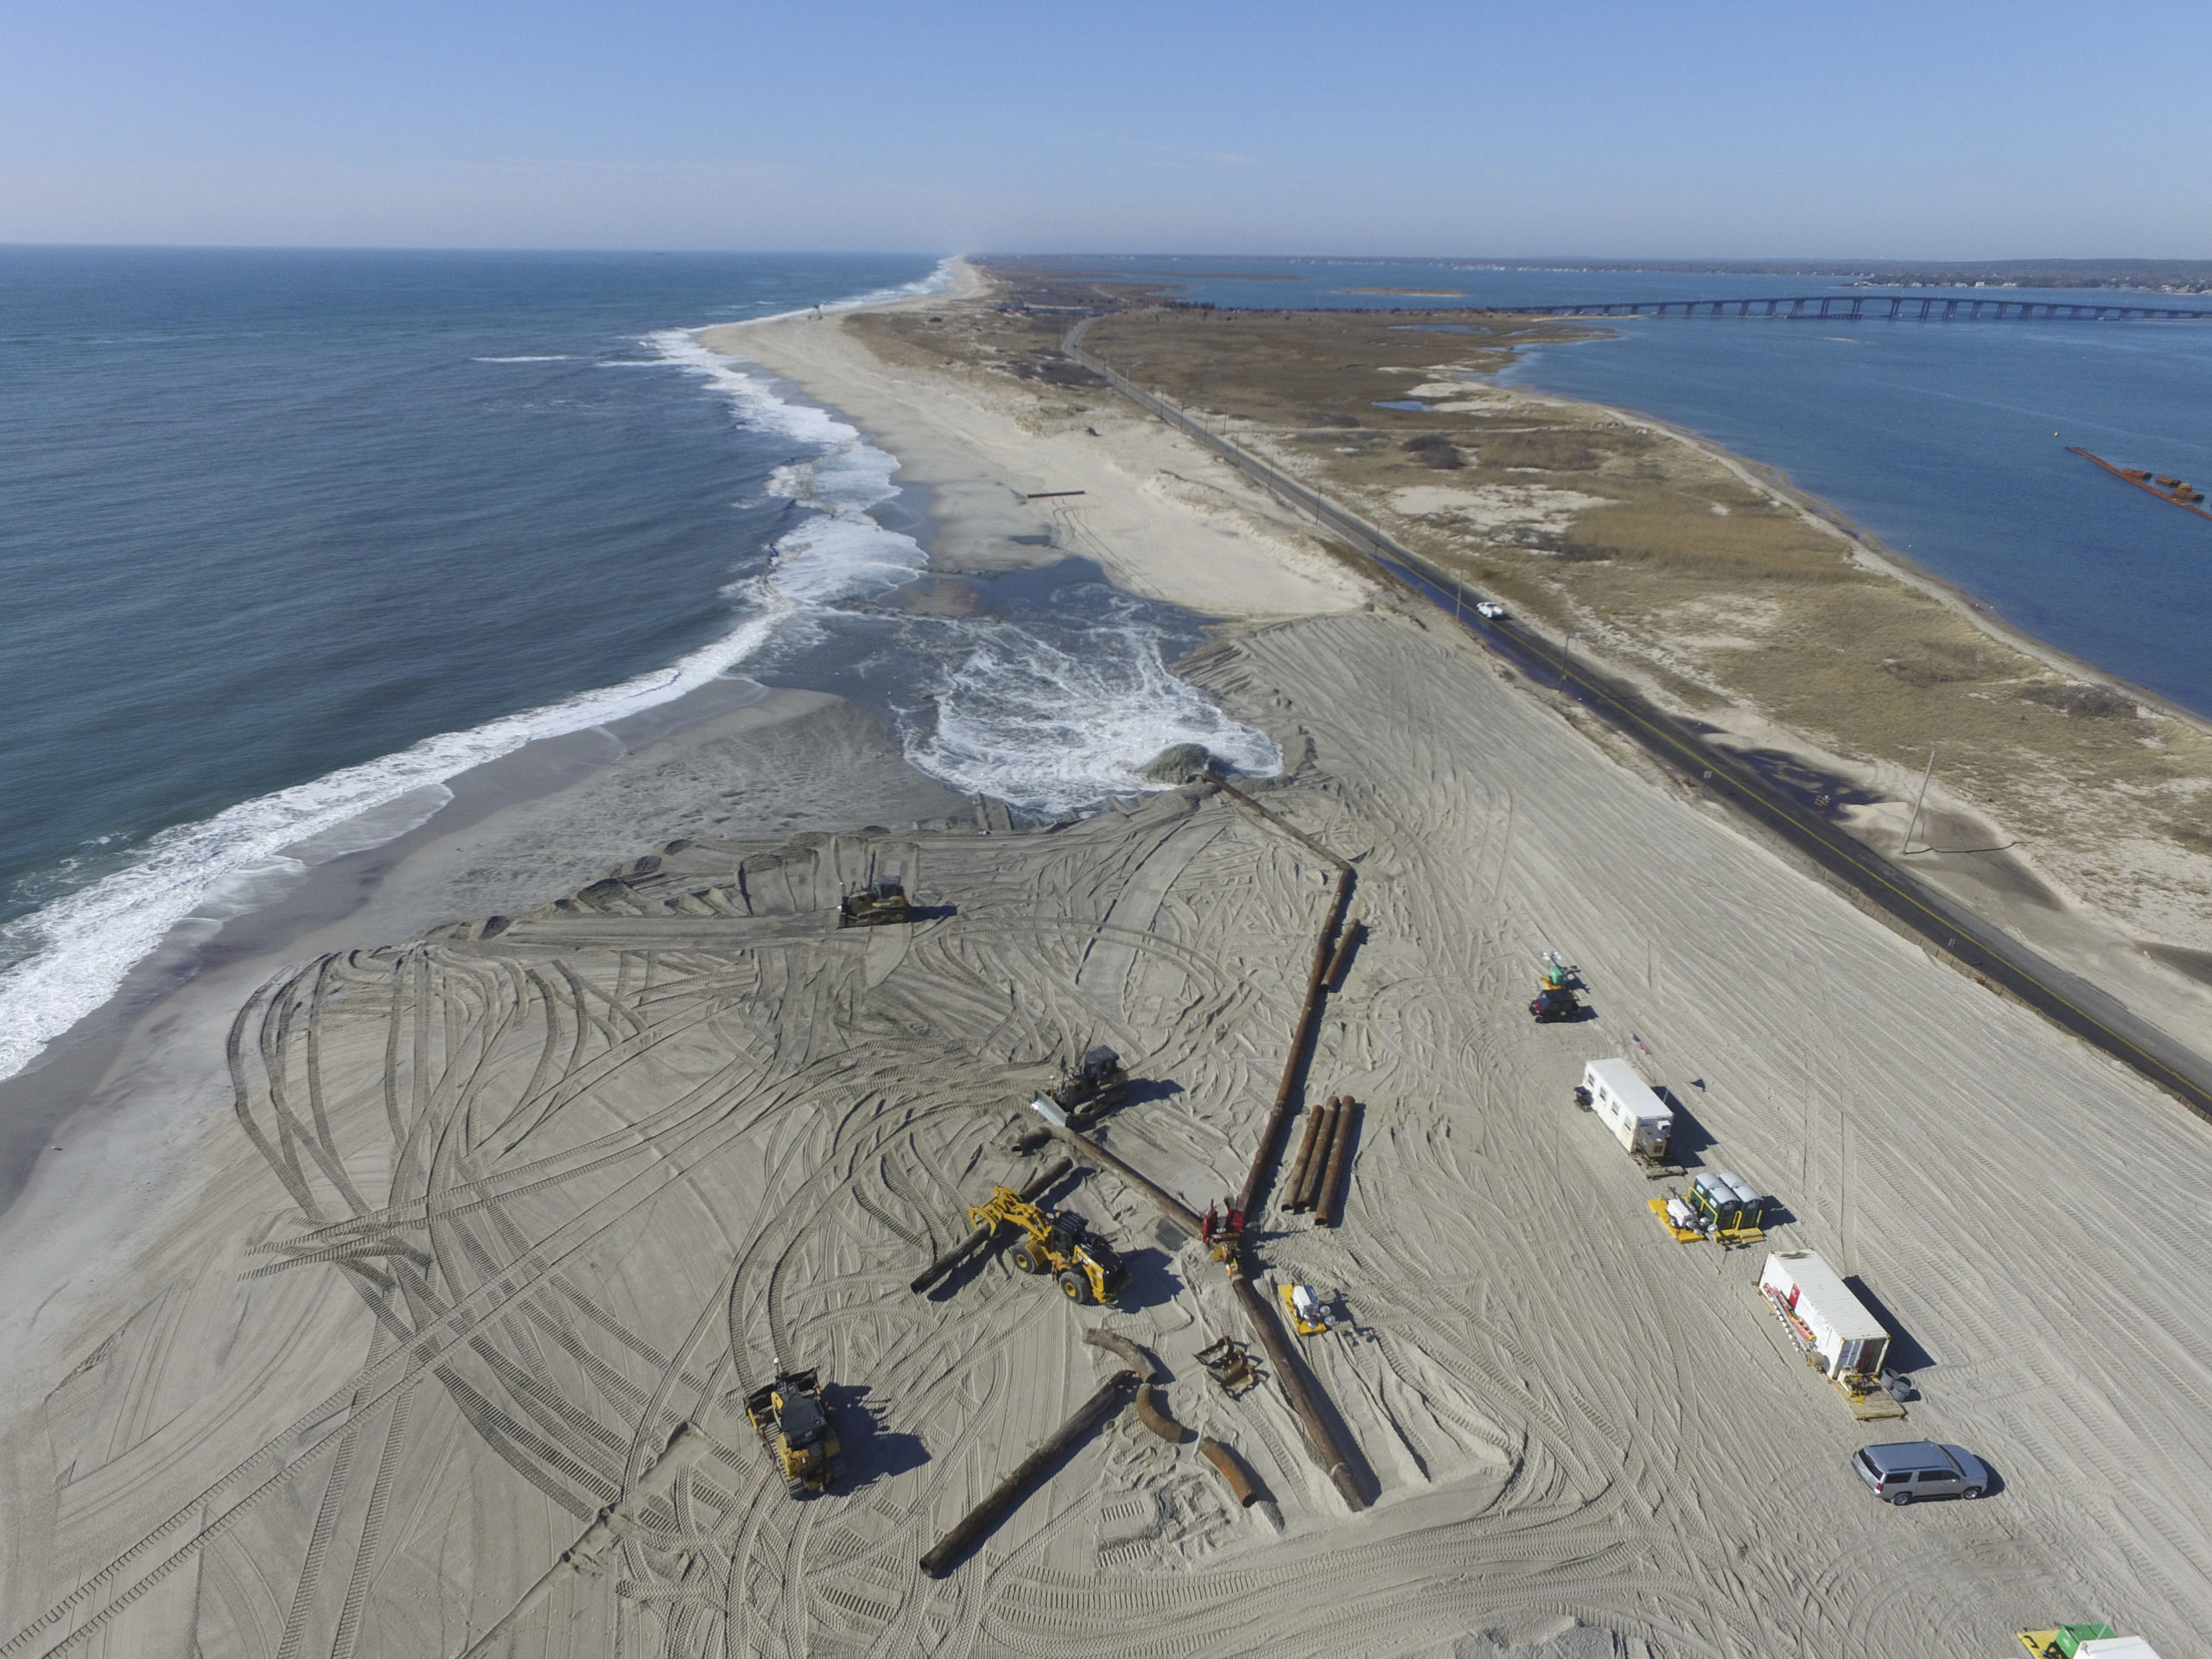 The FIMP project will reconstruct ocean beaches in Montauk, Tiana and West Hampton Dunes.